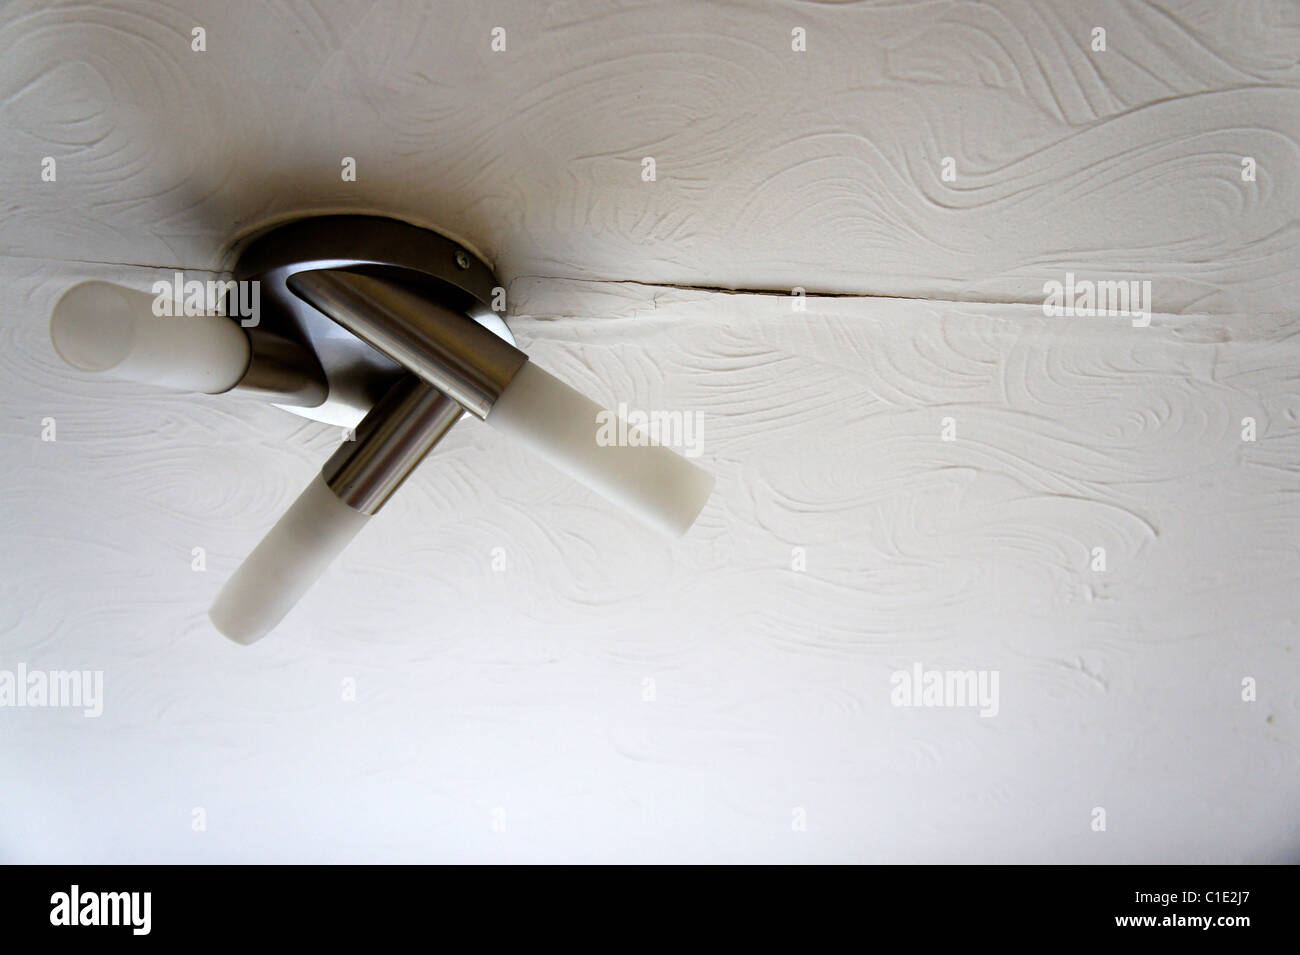 Water damaged ceiling, plaster, leak - Stock Image